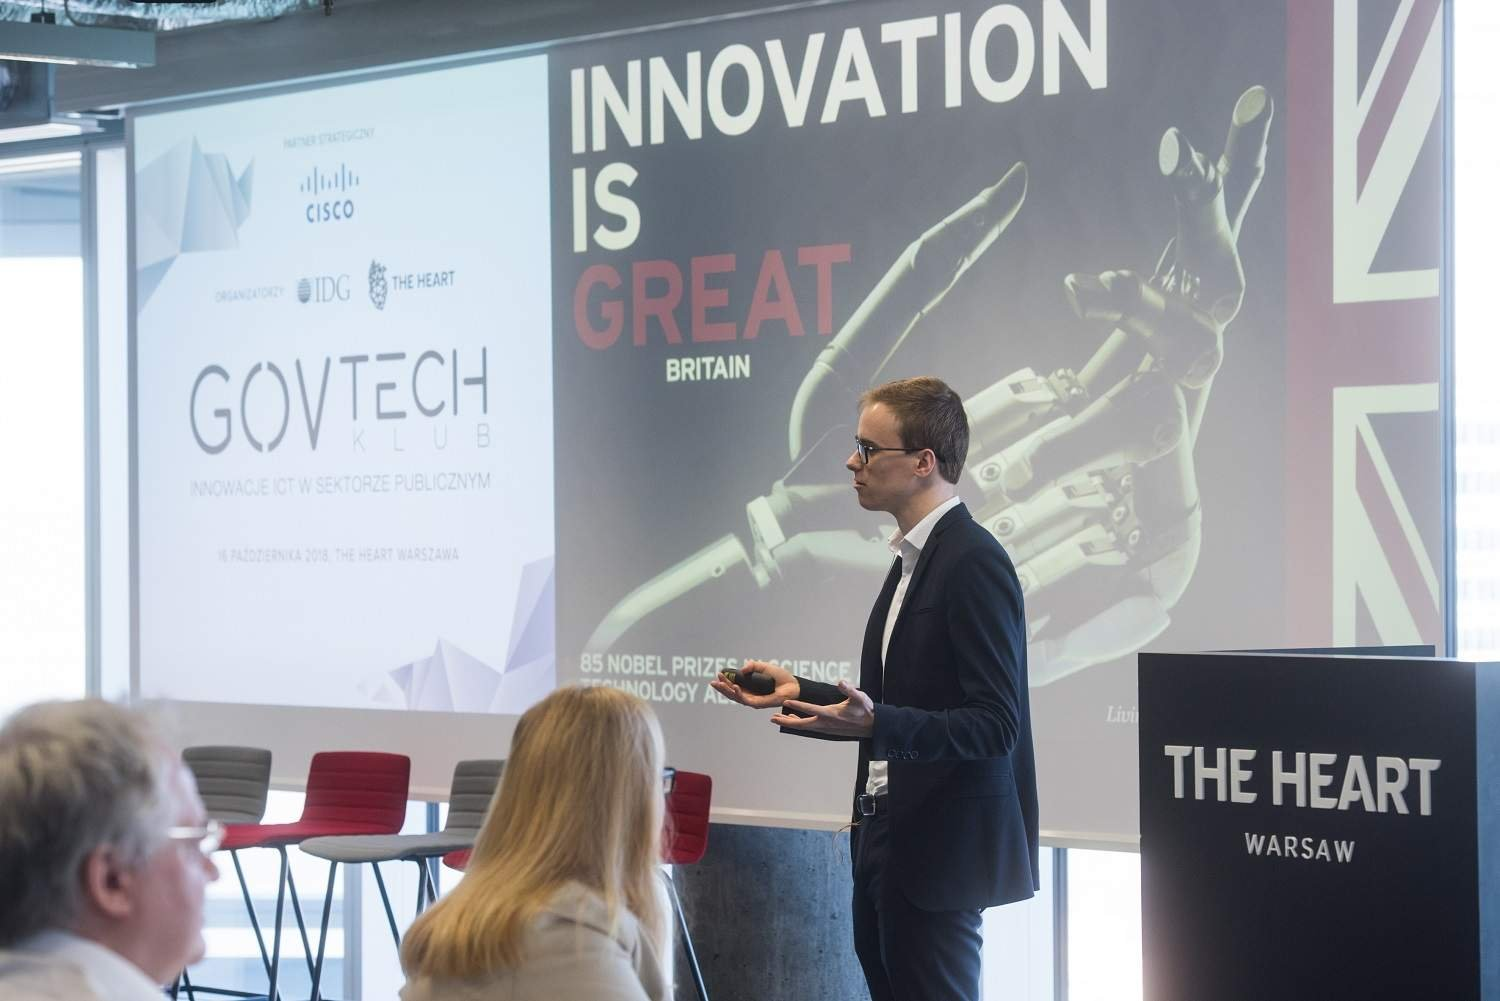 James Brown, Policy Lead for the GovTech Catalyst, Government Digital Service, UK